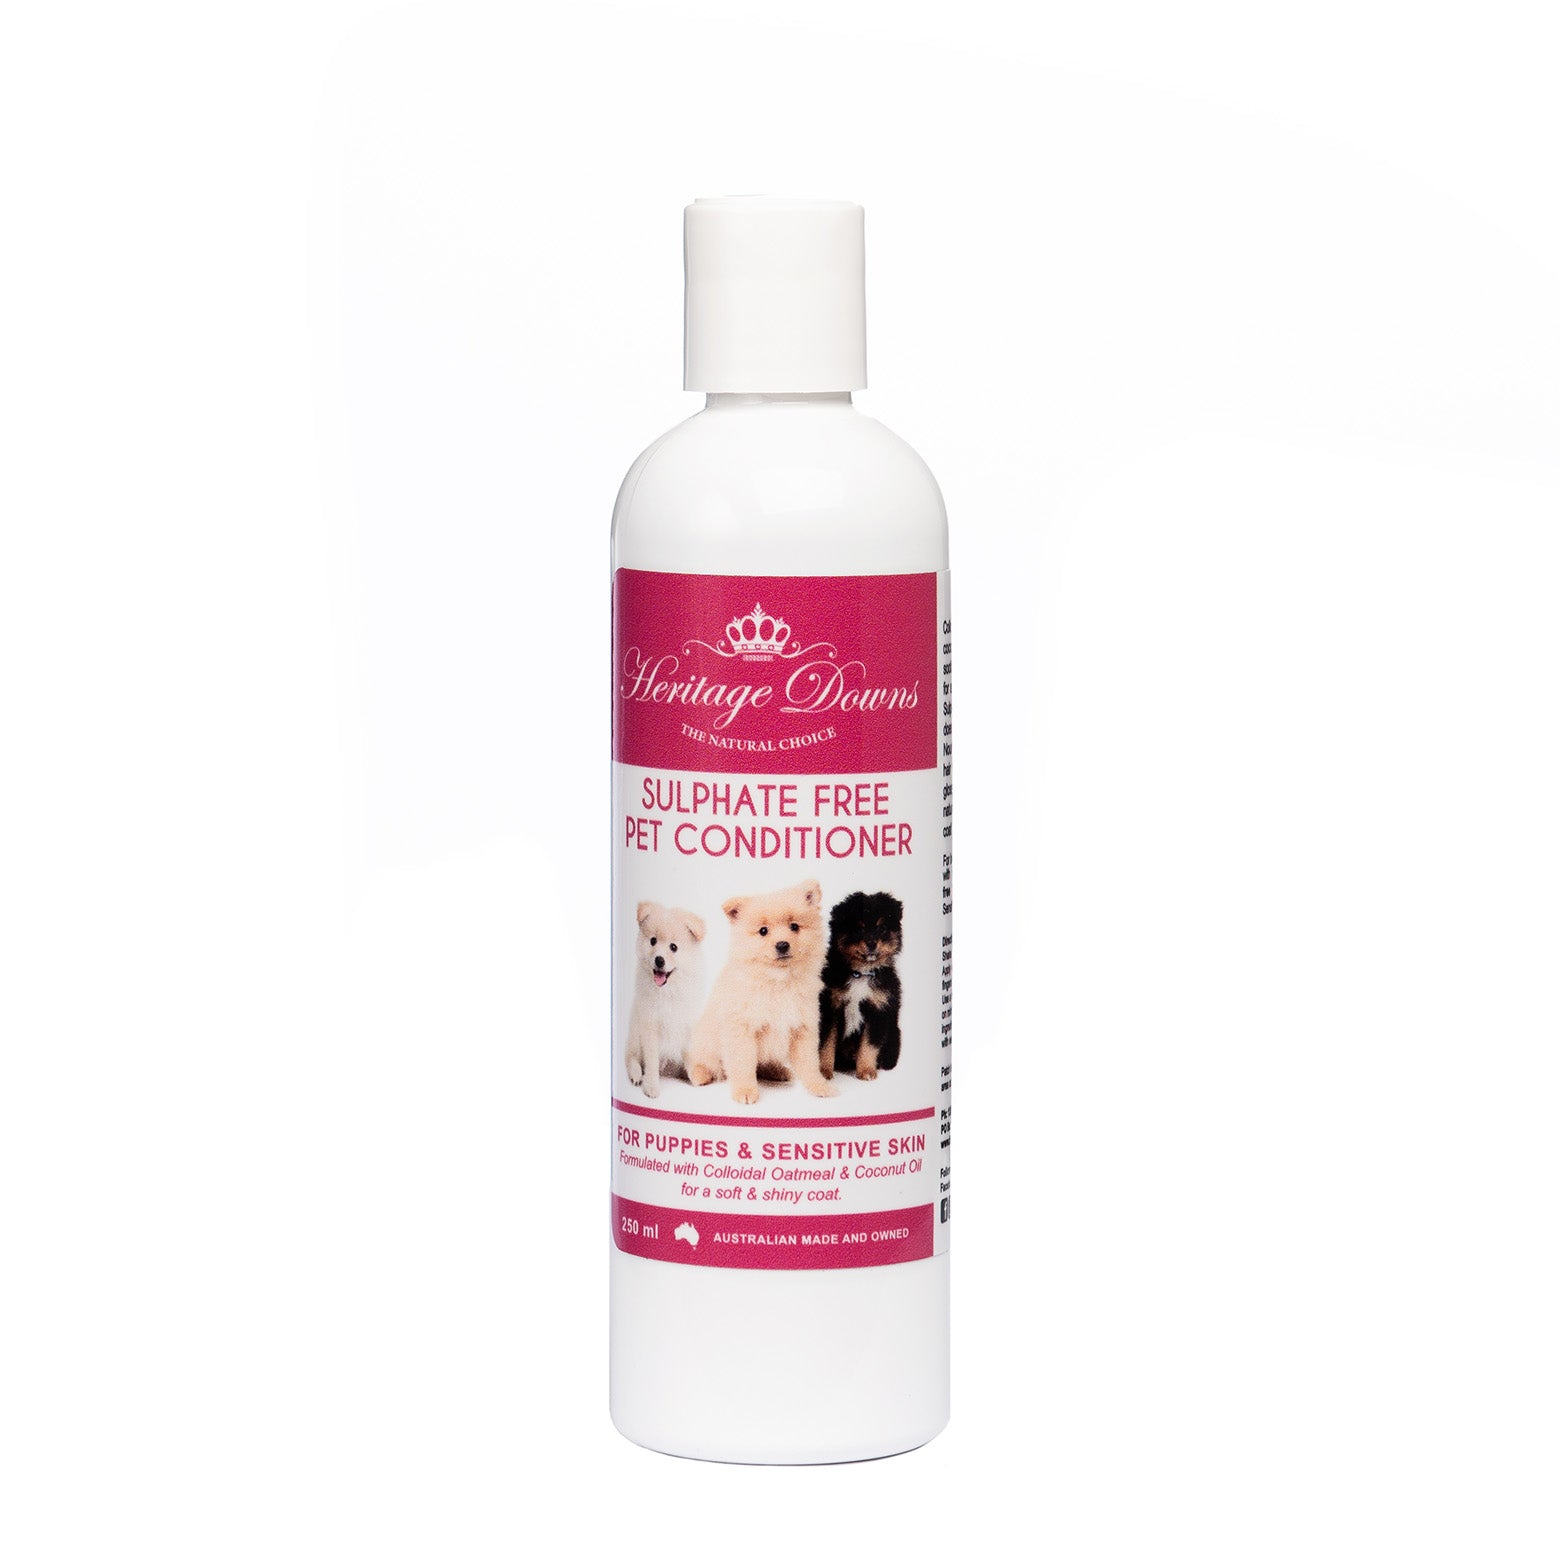 Oatmeal & Coconut Pet Conditioner